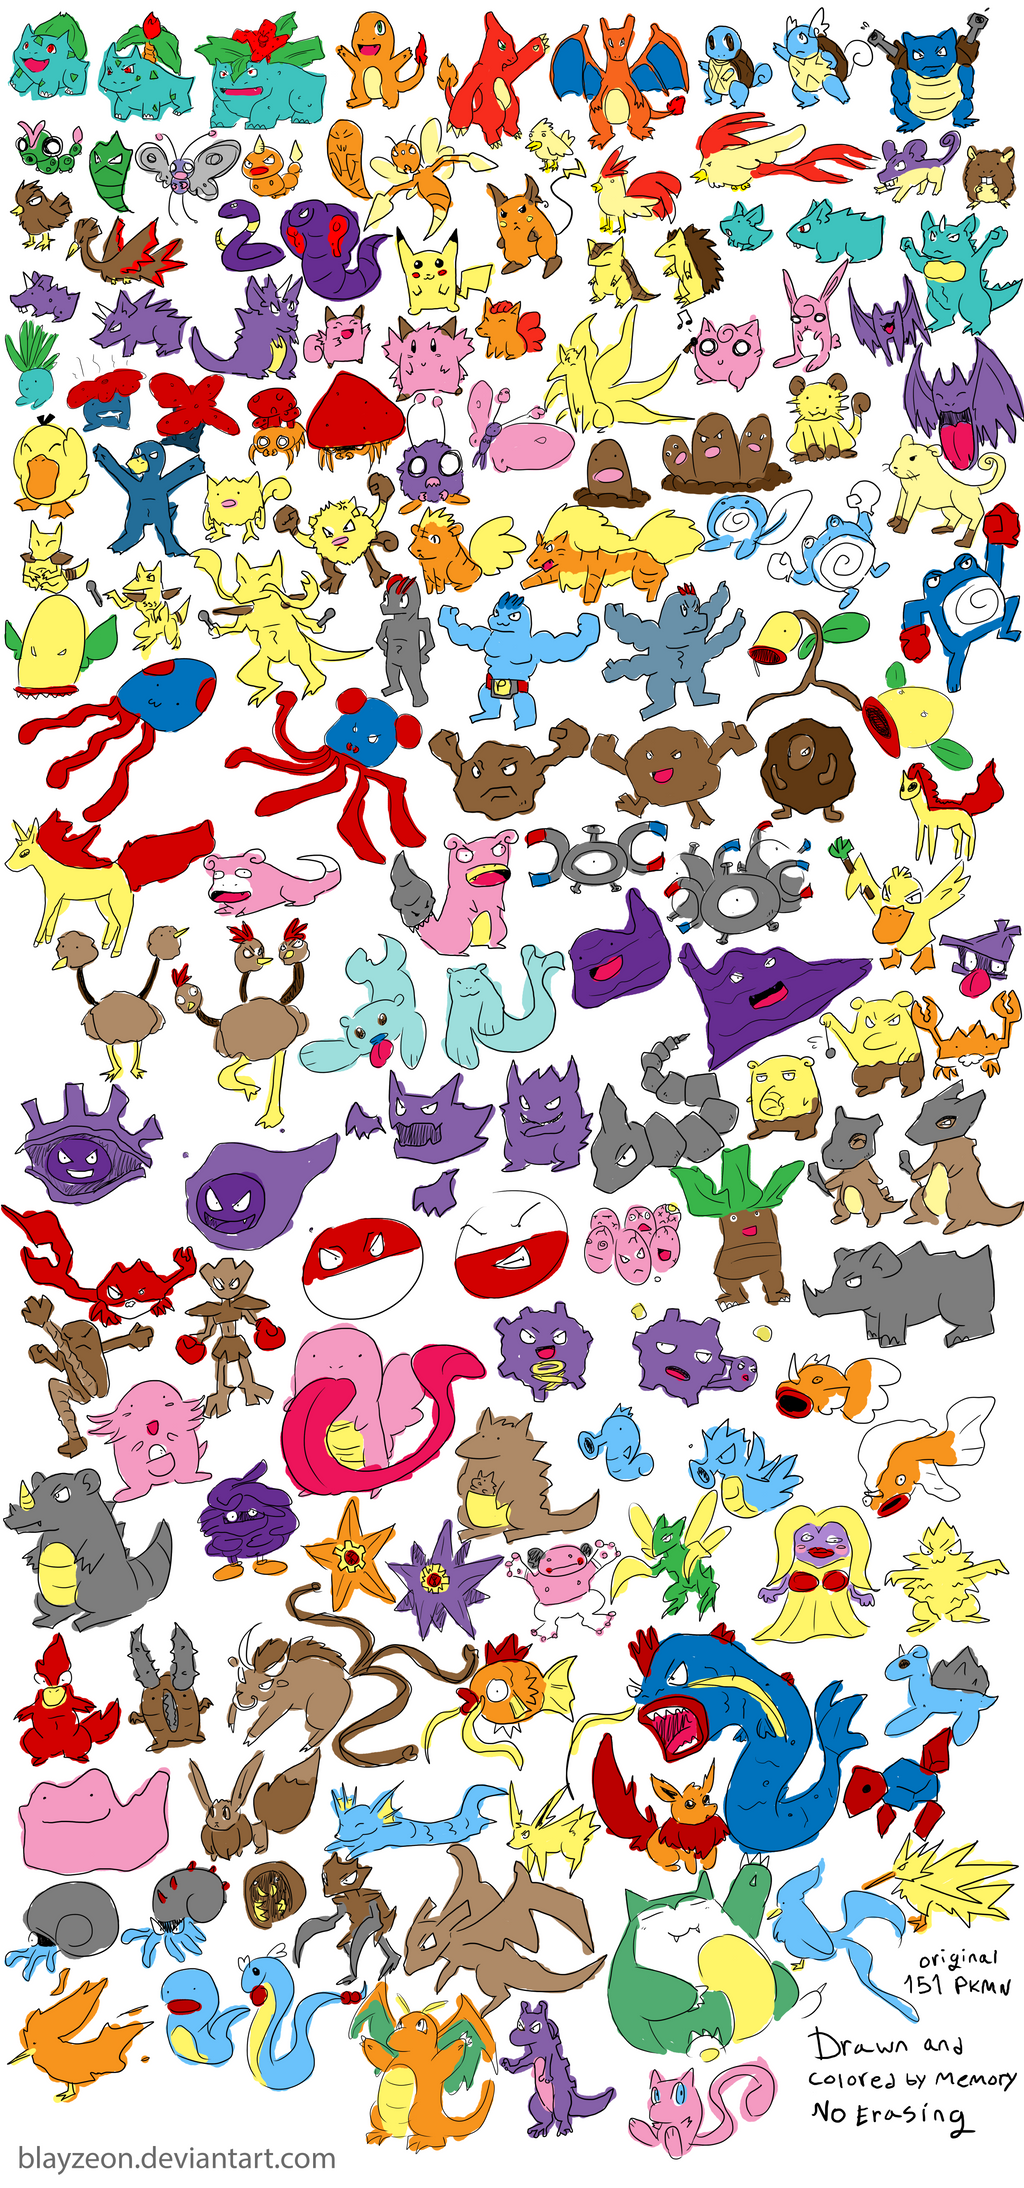 151 Pokemon Drawn by Memory by blayzeon